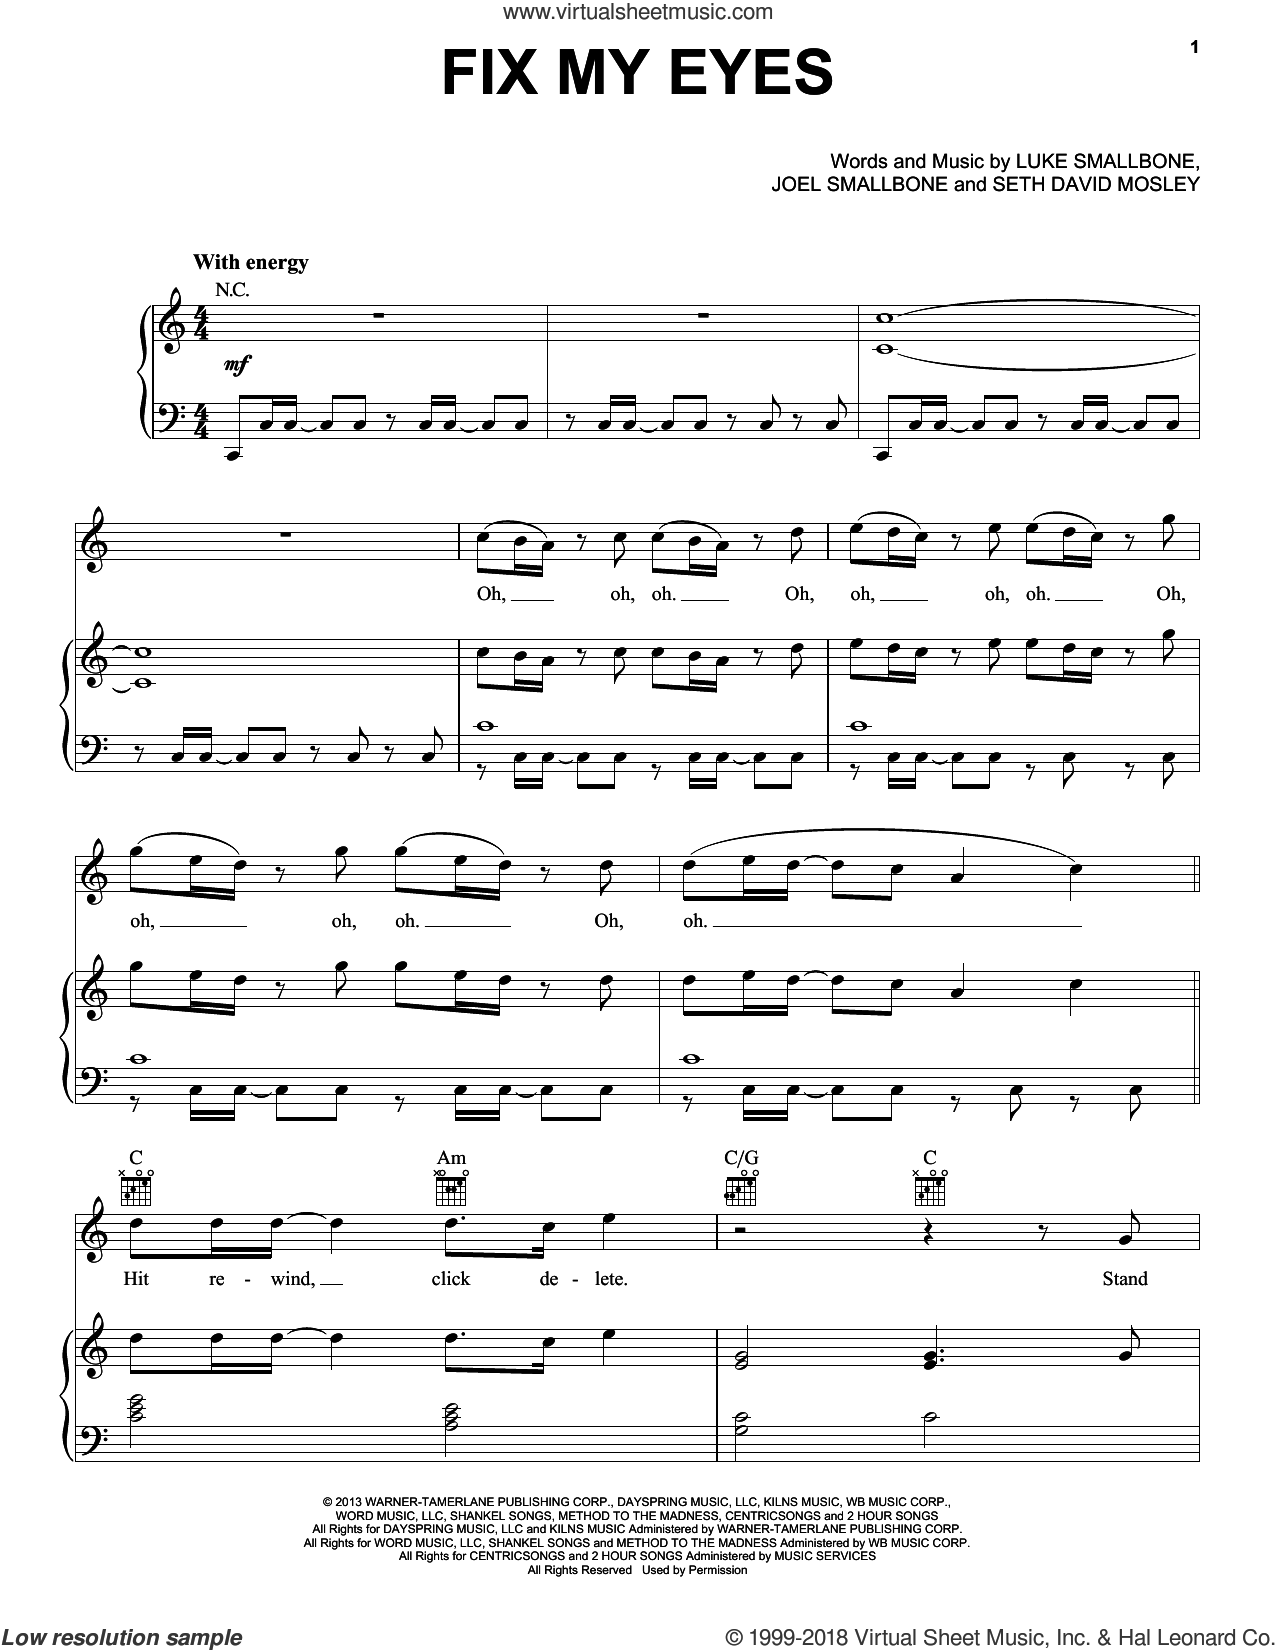 Fix My Eyes sheet music for voice, piano or guitar by for KING & COUNTRY, Joel Smallbone, Luke Smallbone and Seth David Mosley, intermediate skill level